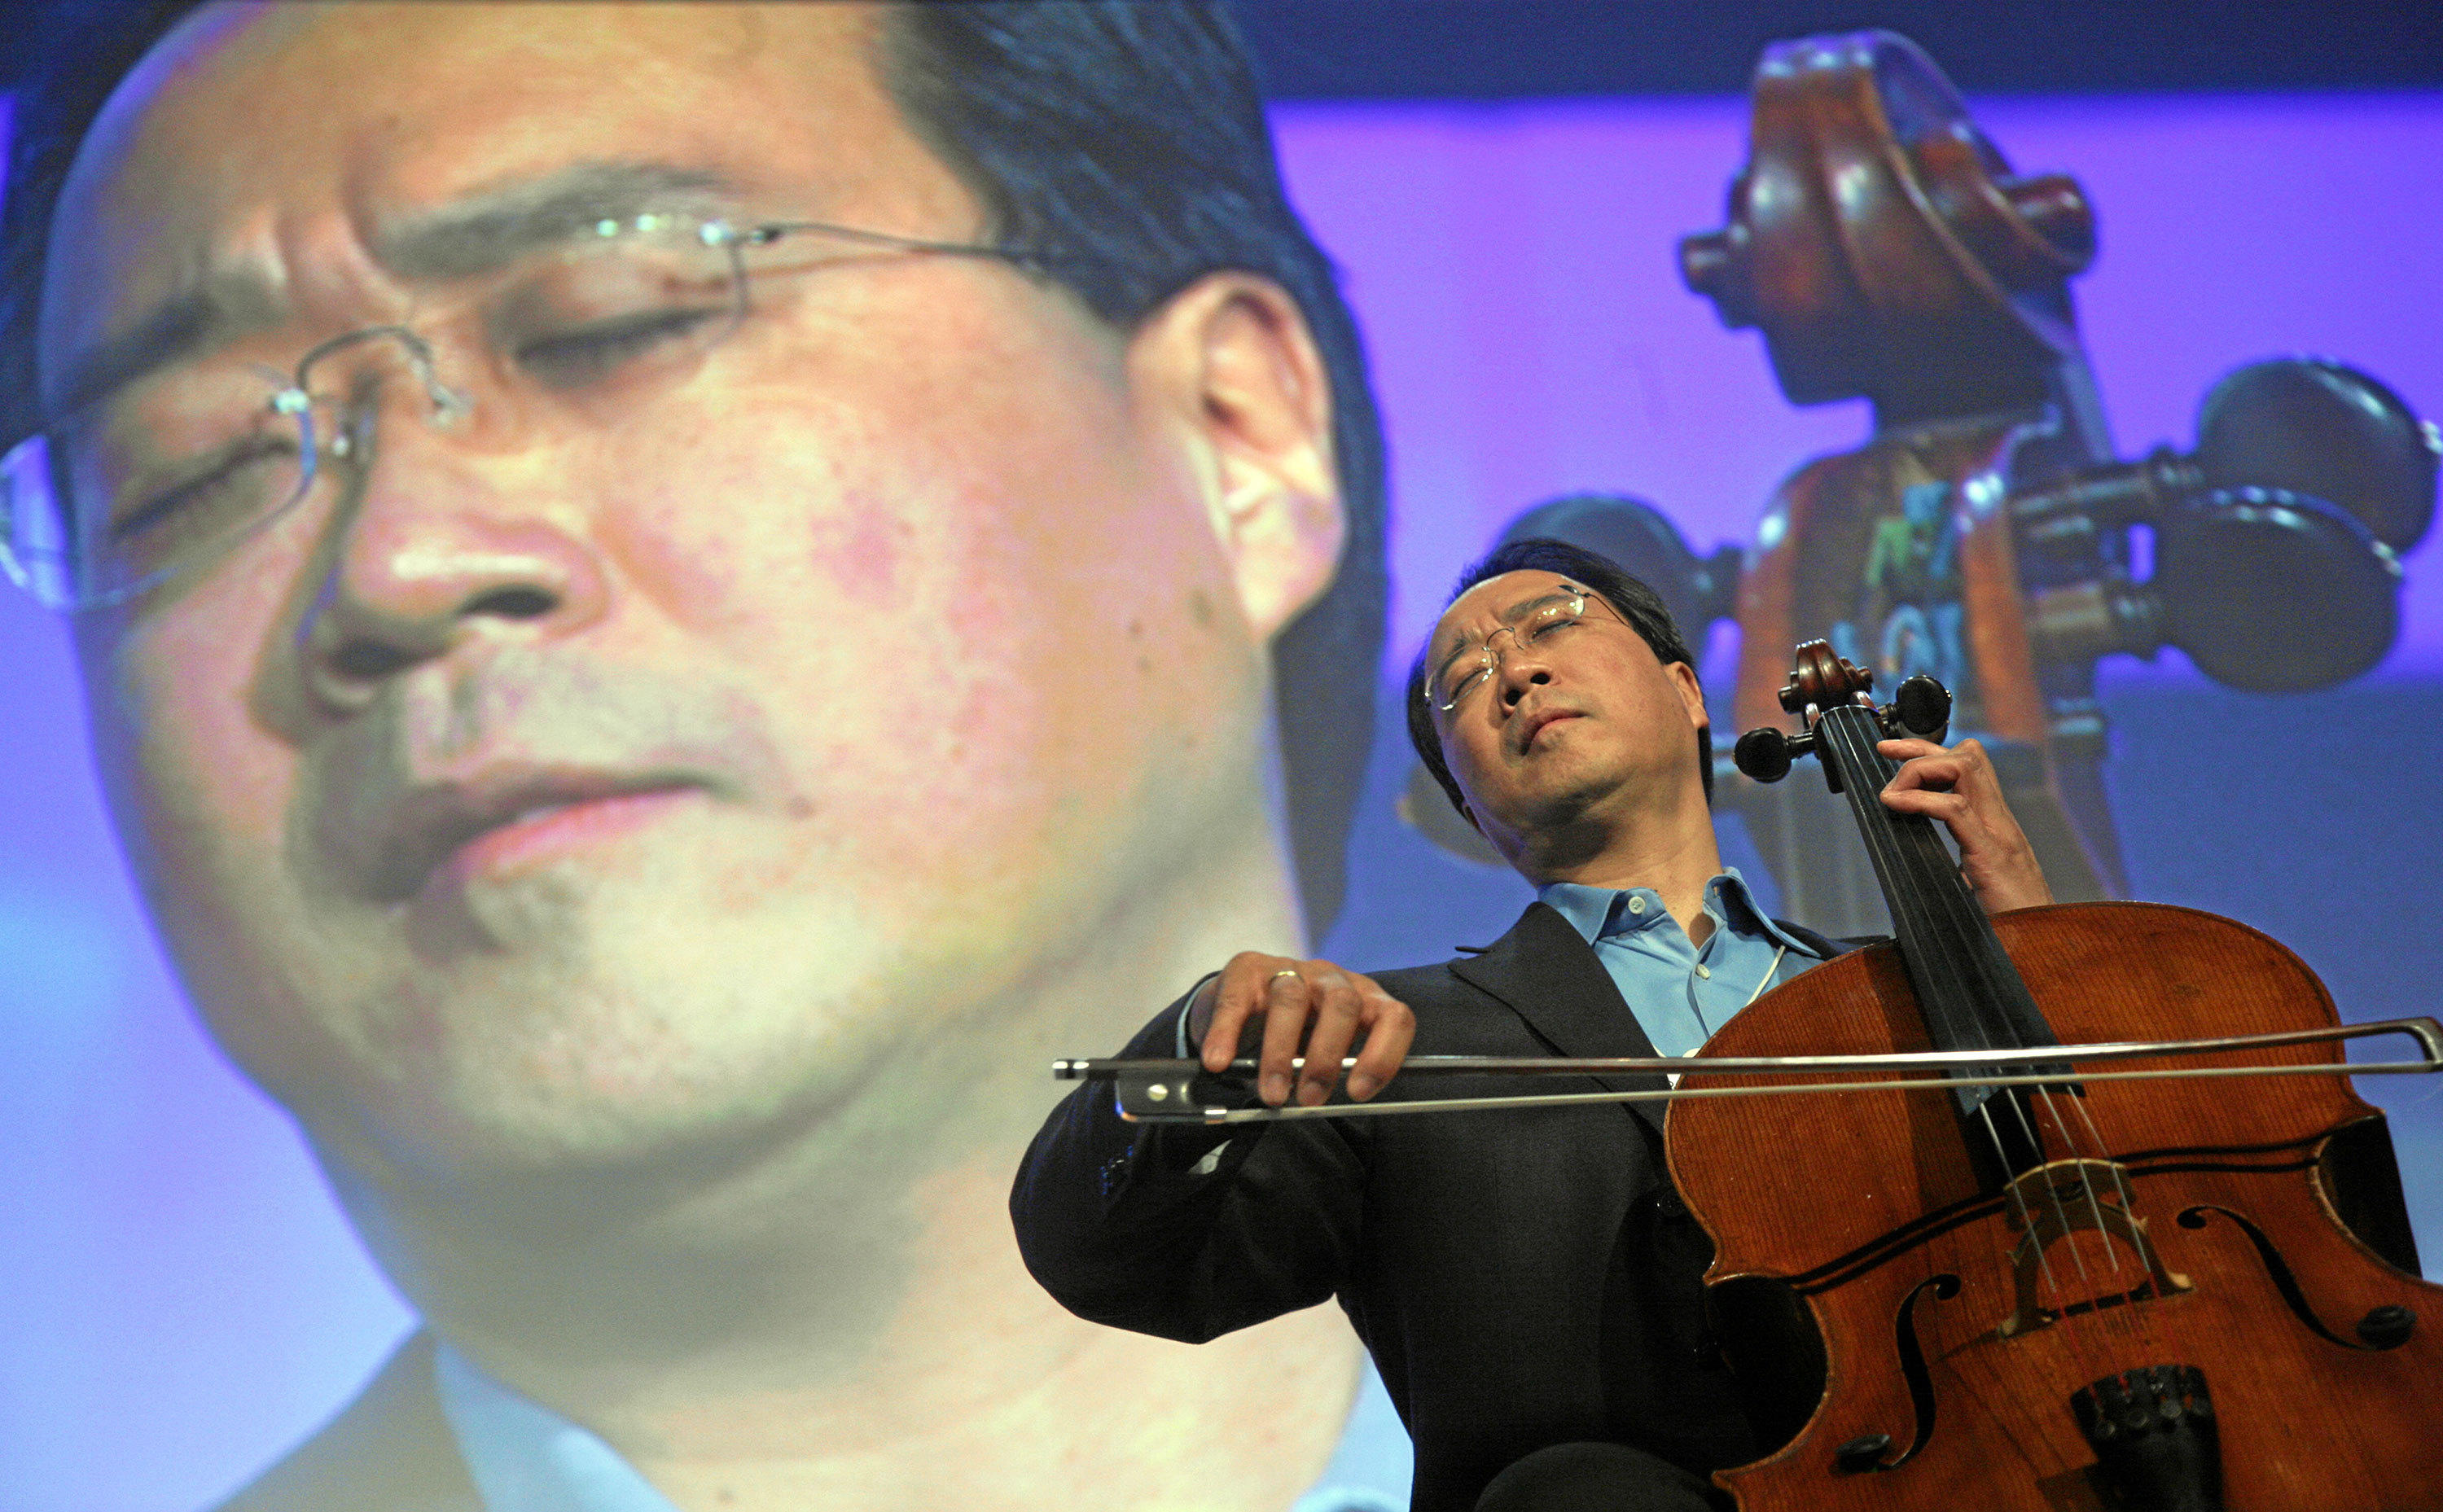 World-renowned cellist Yo-Yo Ma comes to Heinz Hall in October. (credit: Courtesy of World Economic Forum on flickr)